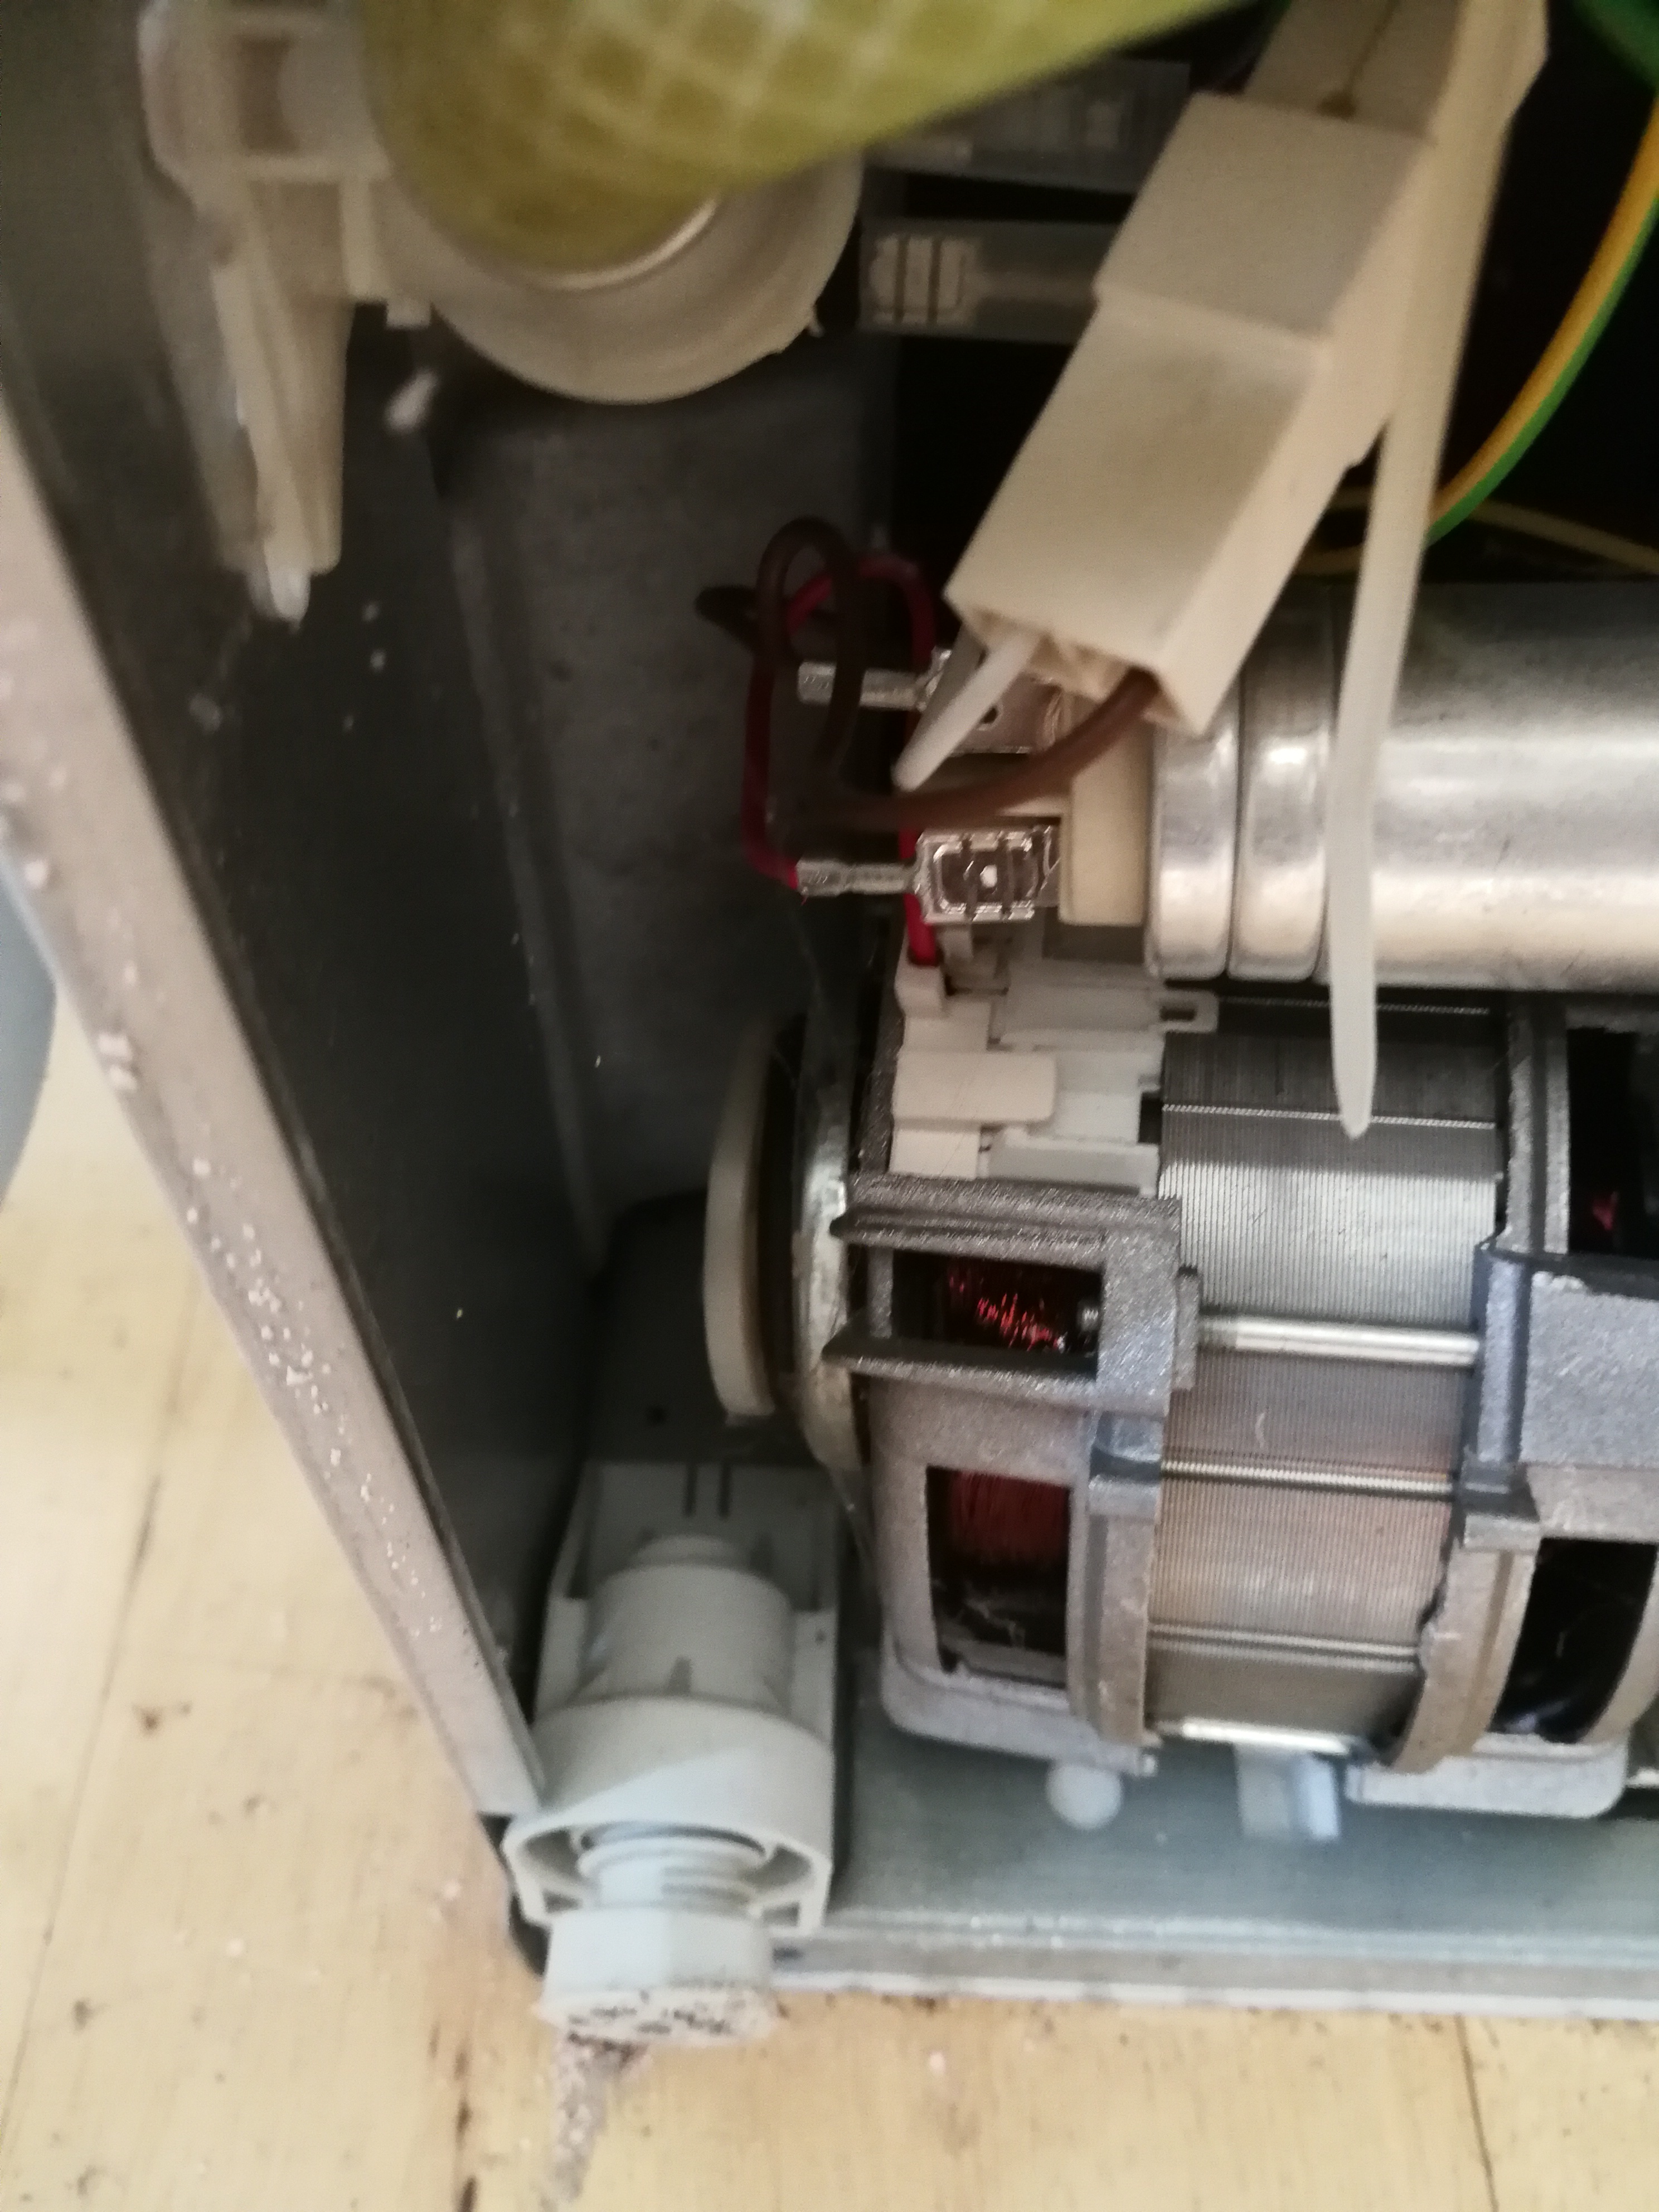 My Beko De2431f Dishwasher Keeps Tripping The Rcd Fuse Box After About 15 To 20 Minutes  Any